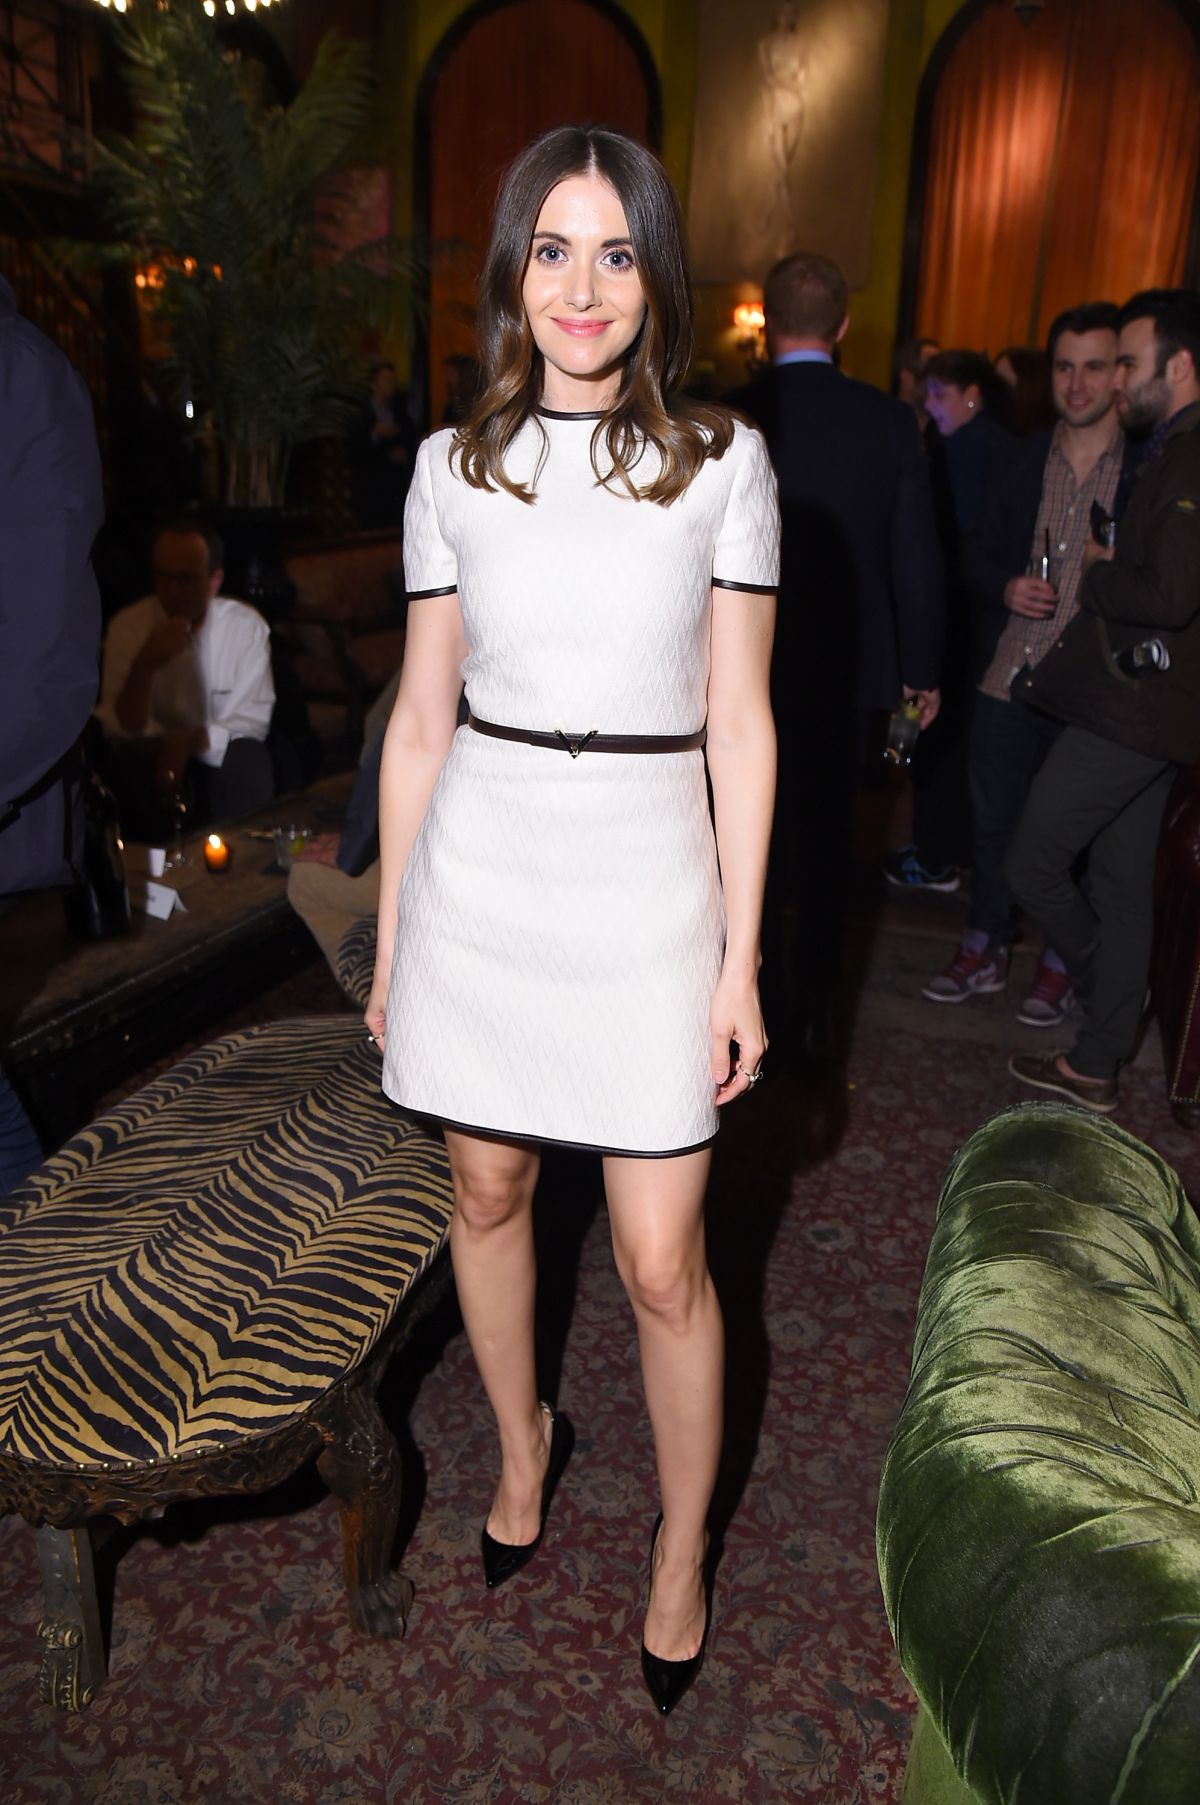 ALISON BRIE at Sleeping with Other People Premiere After Party in New York